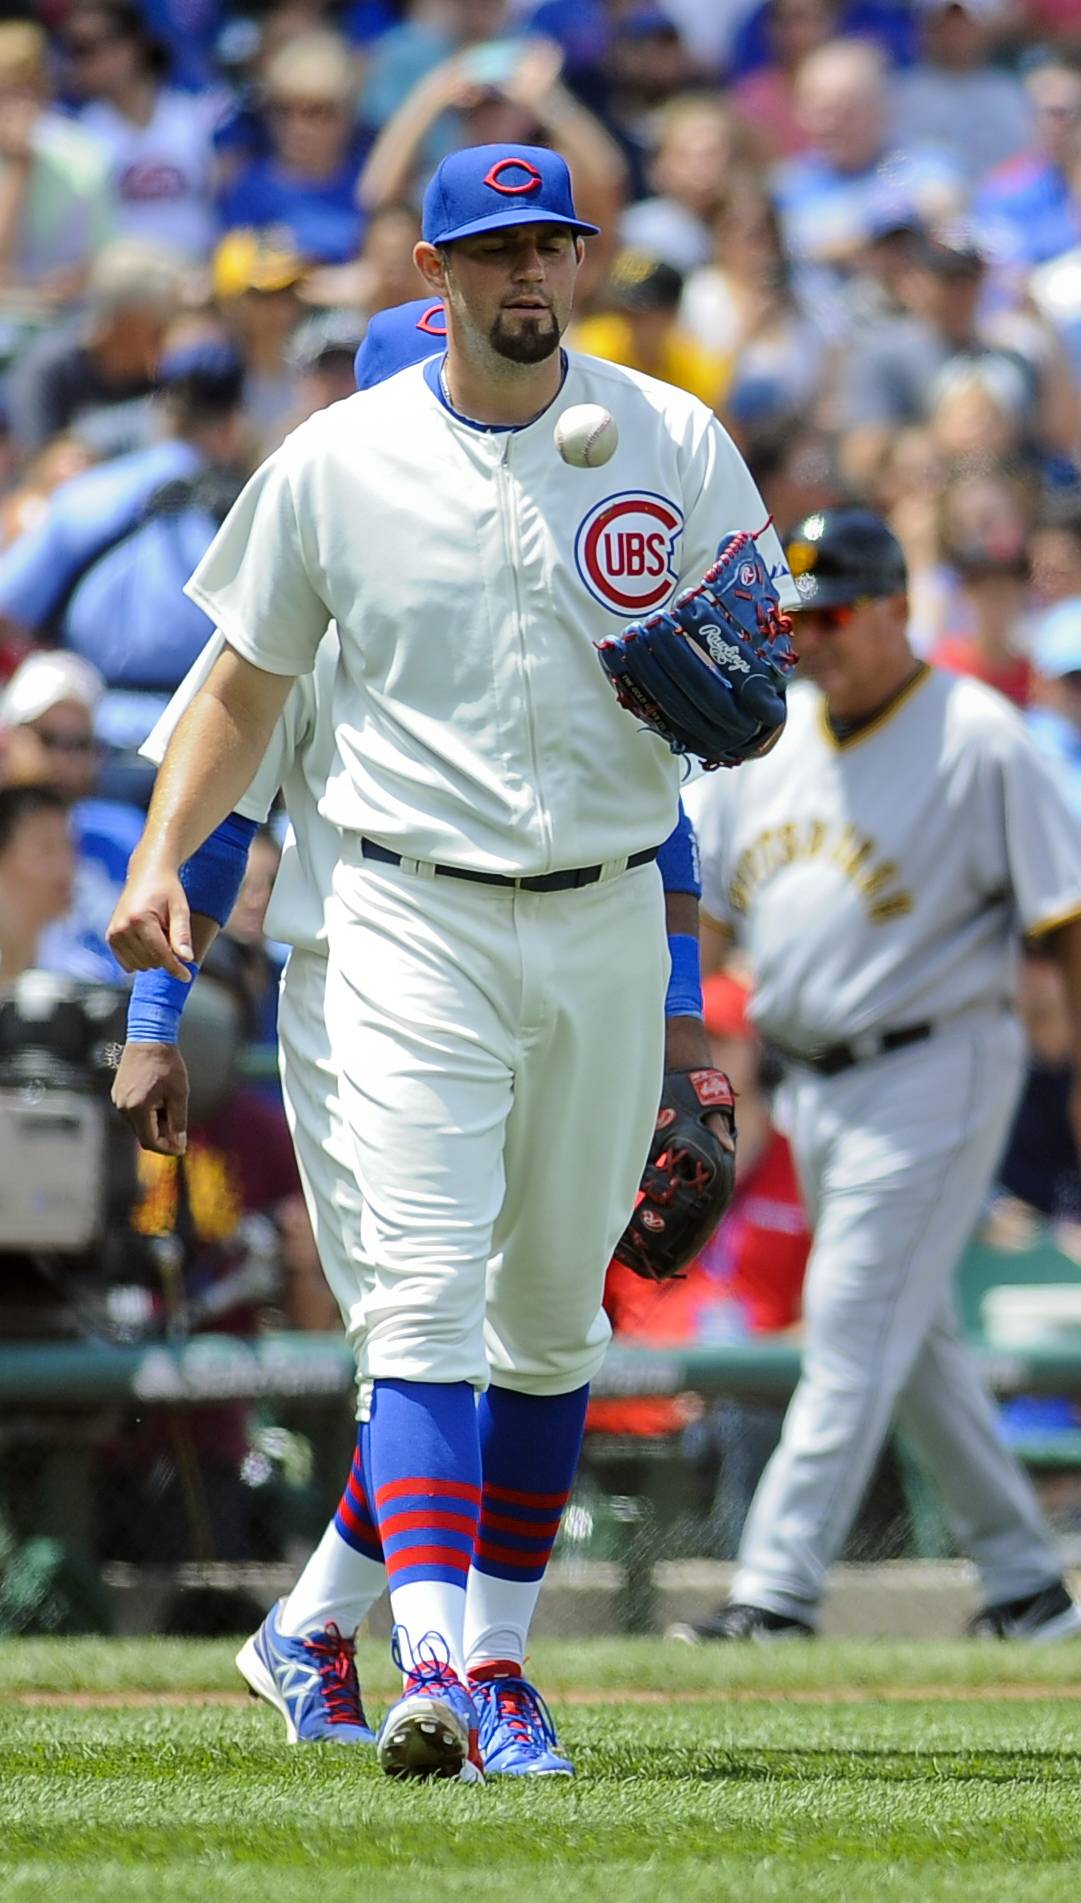 Cubs starting pitcher Jason Hammel flips the ball after the second Pirates run scored during the third inning Sunday. Hammel allowed only those 2 runs in 7 innings but suffered the loss.